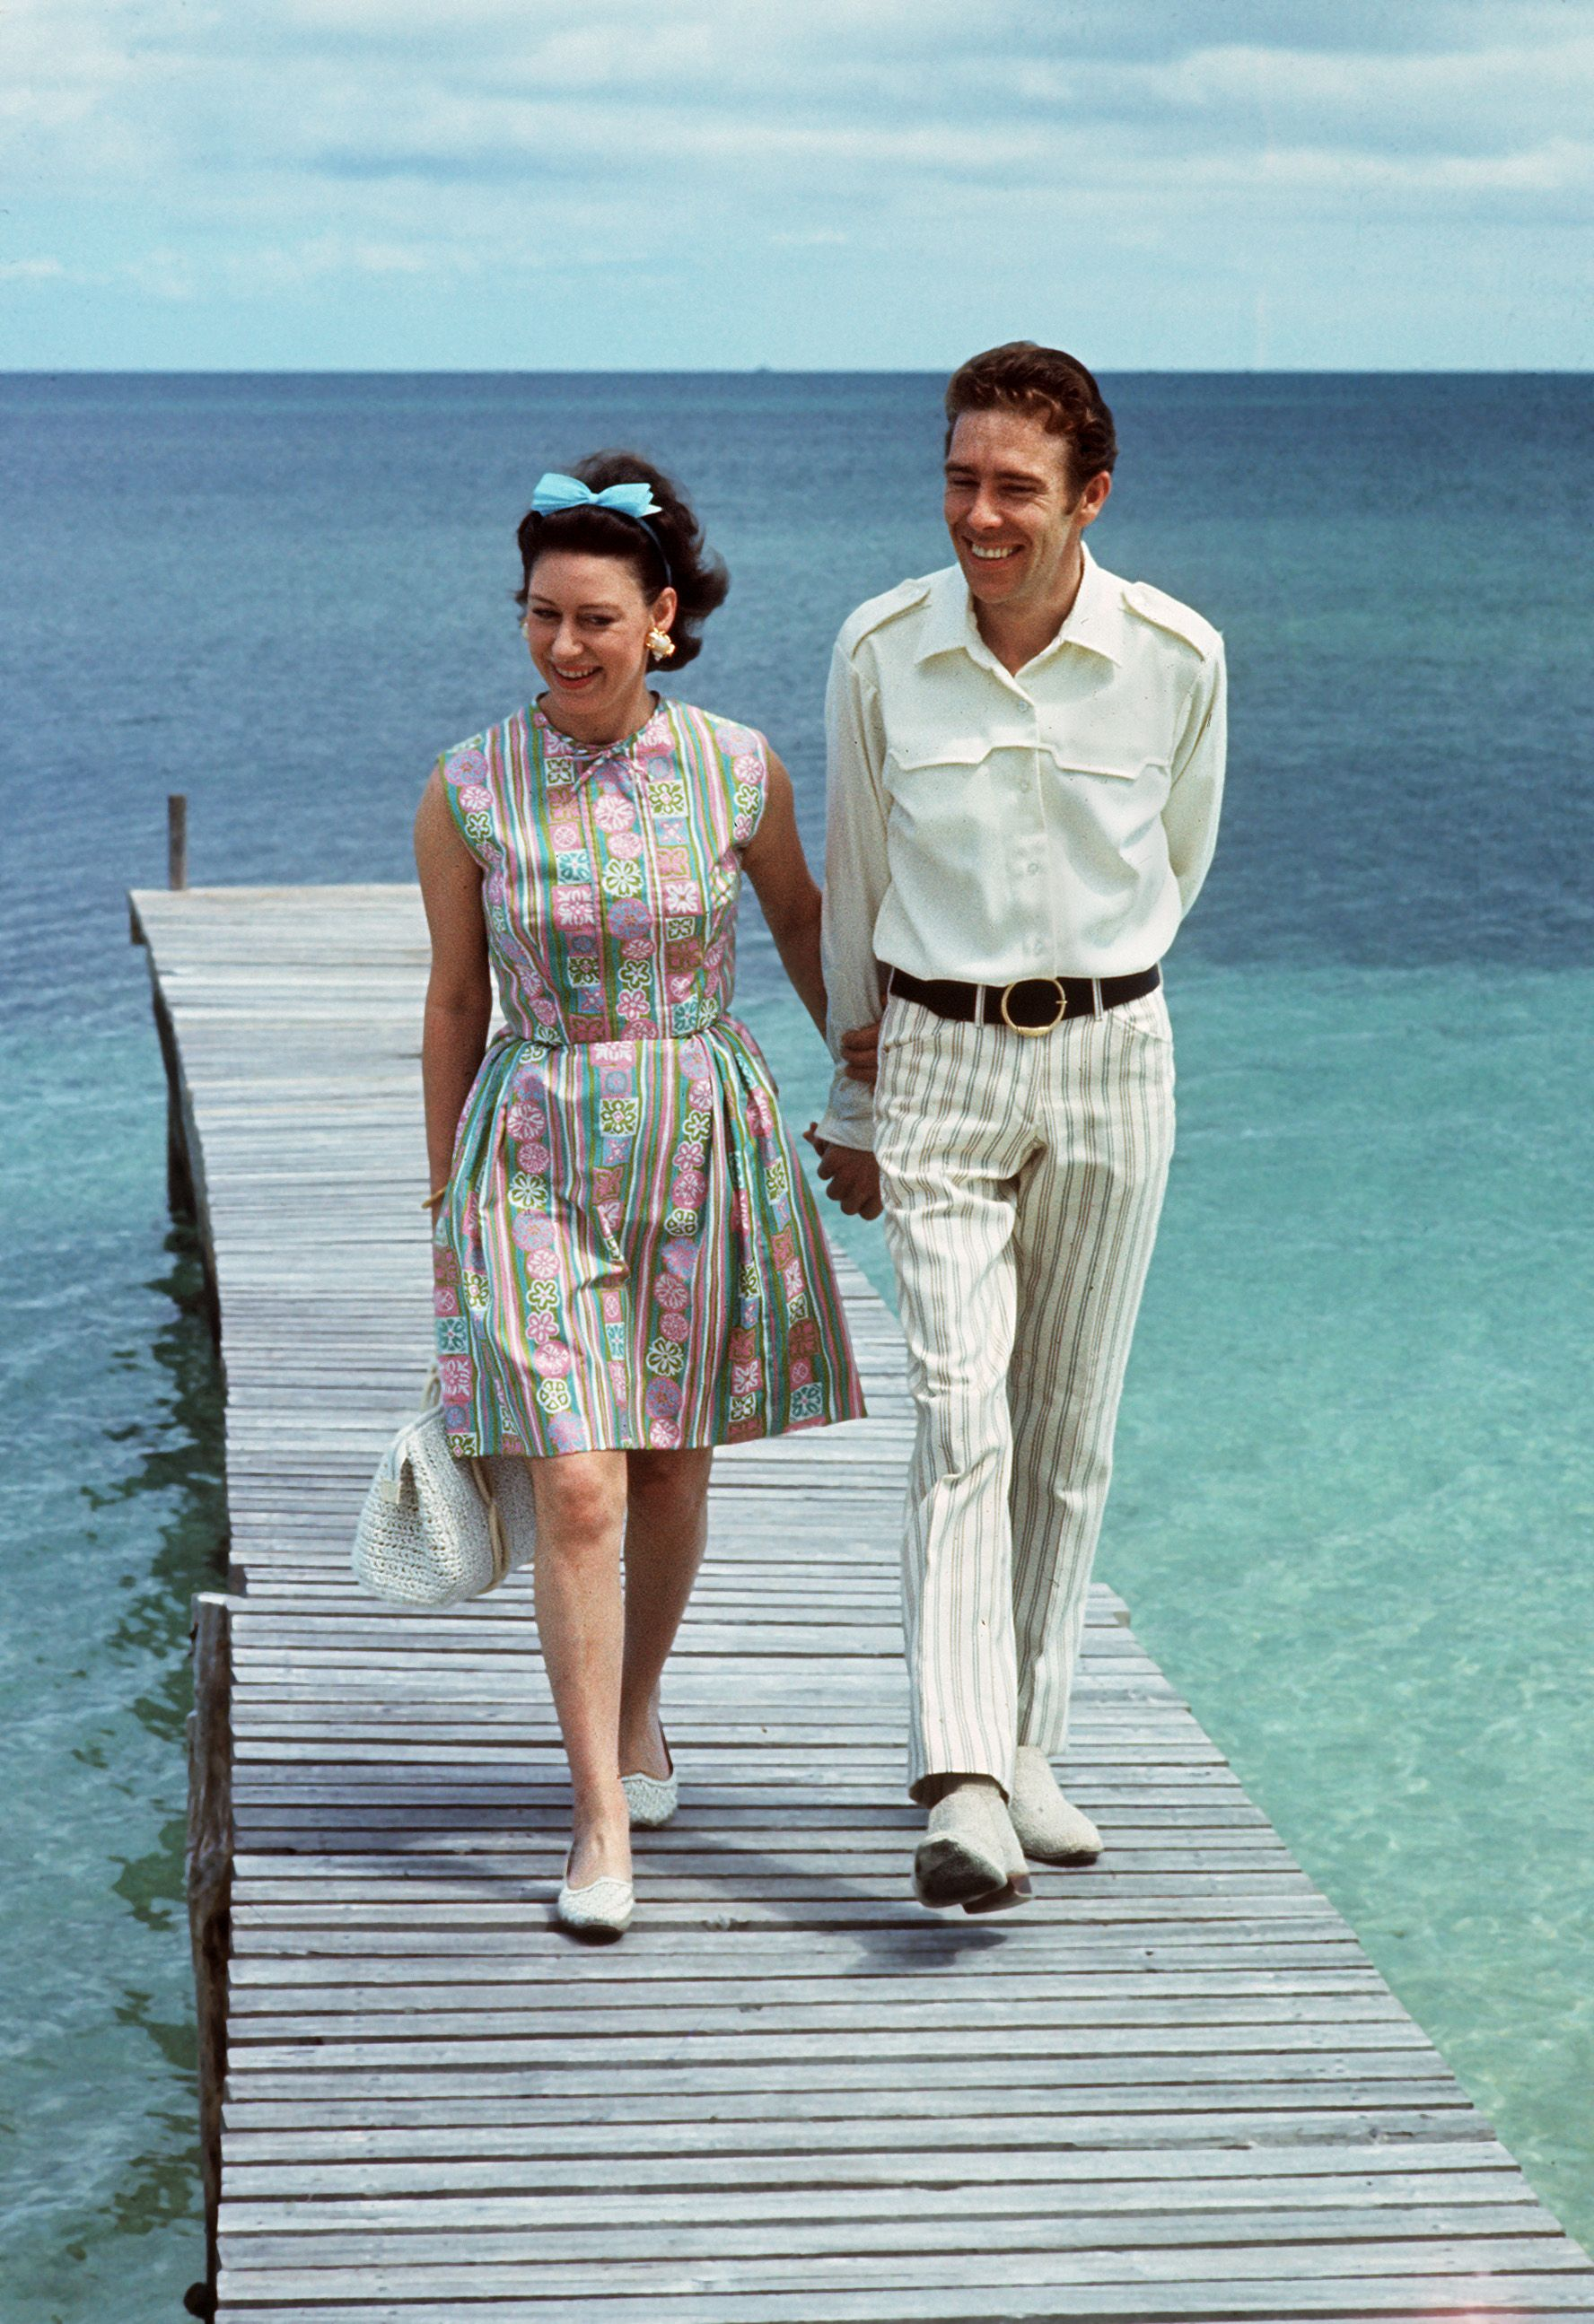 Princess Margaret and Lord Snowdon's Relationship in Photos